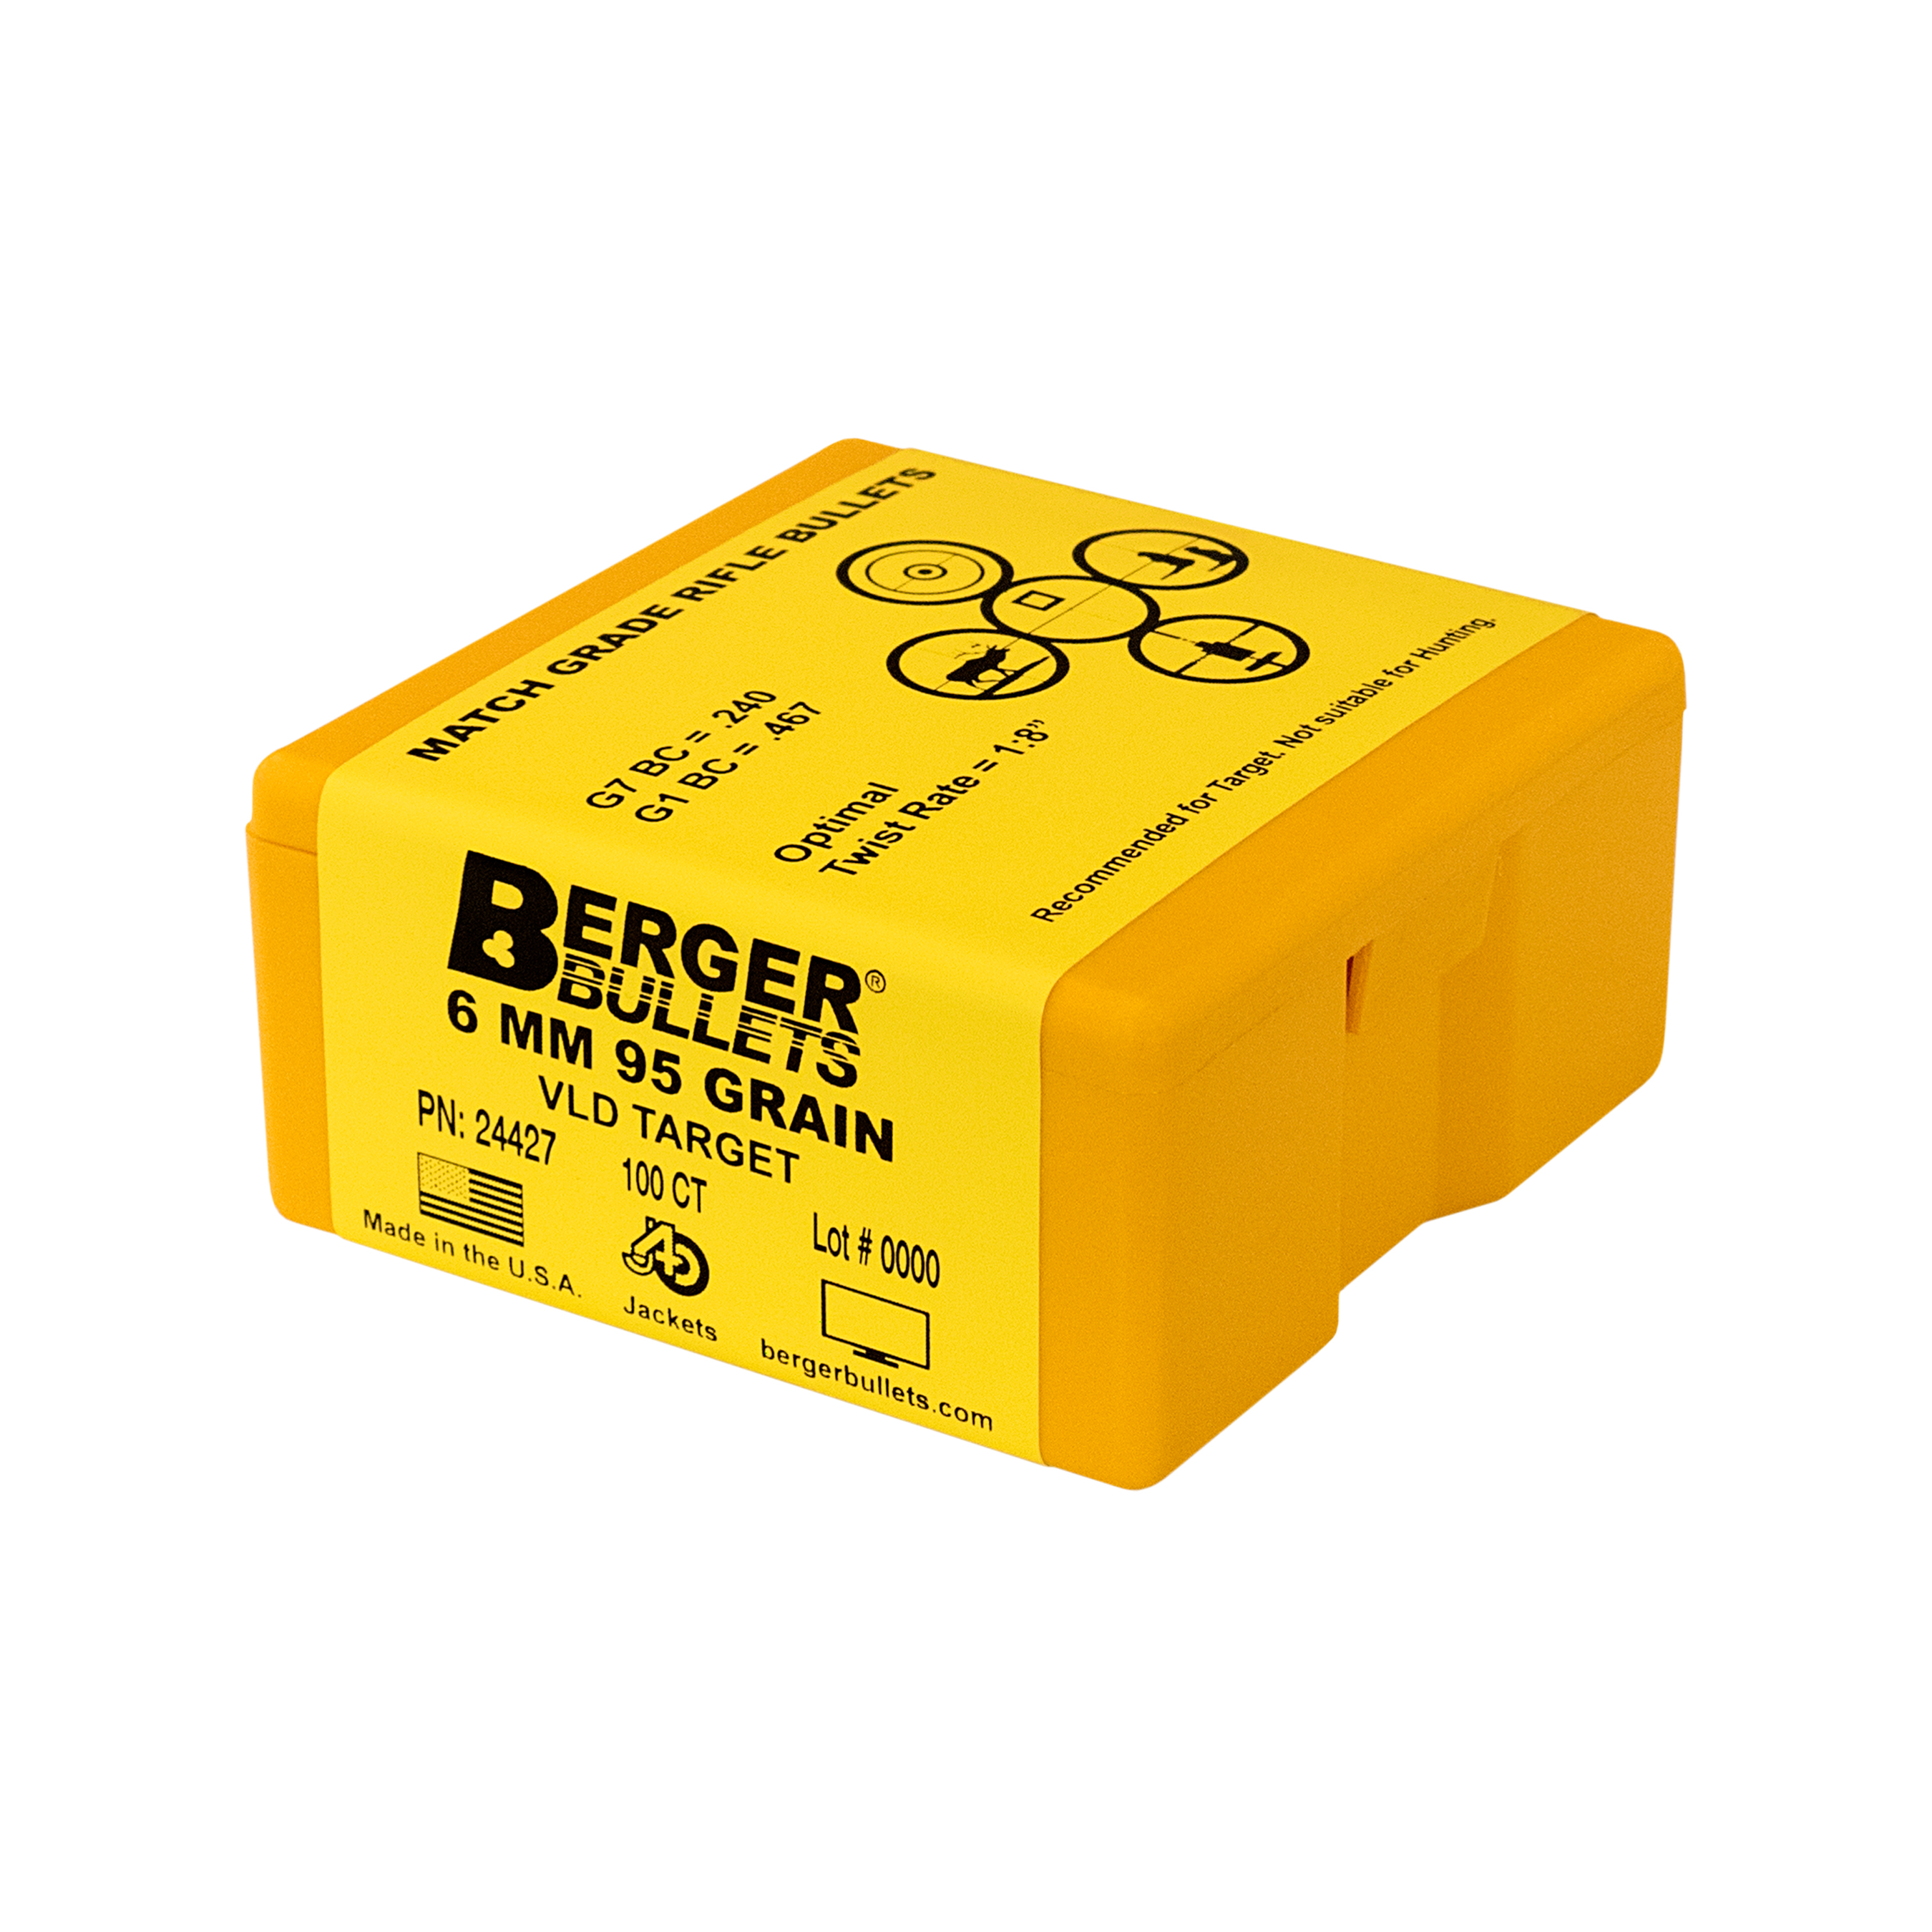 Berger 6mm 95 Gr VLD Target Bullets (100 Ct)